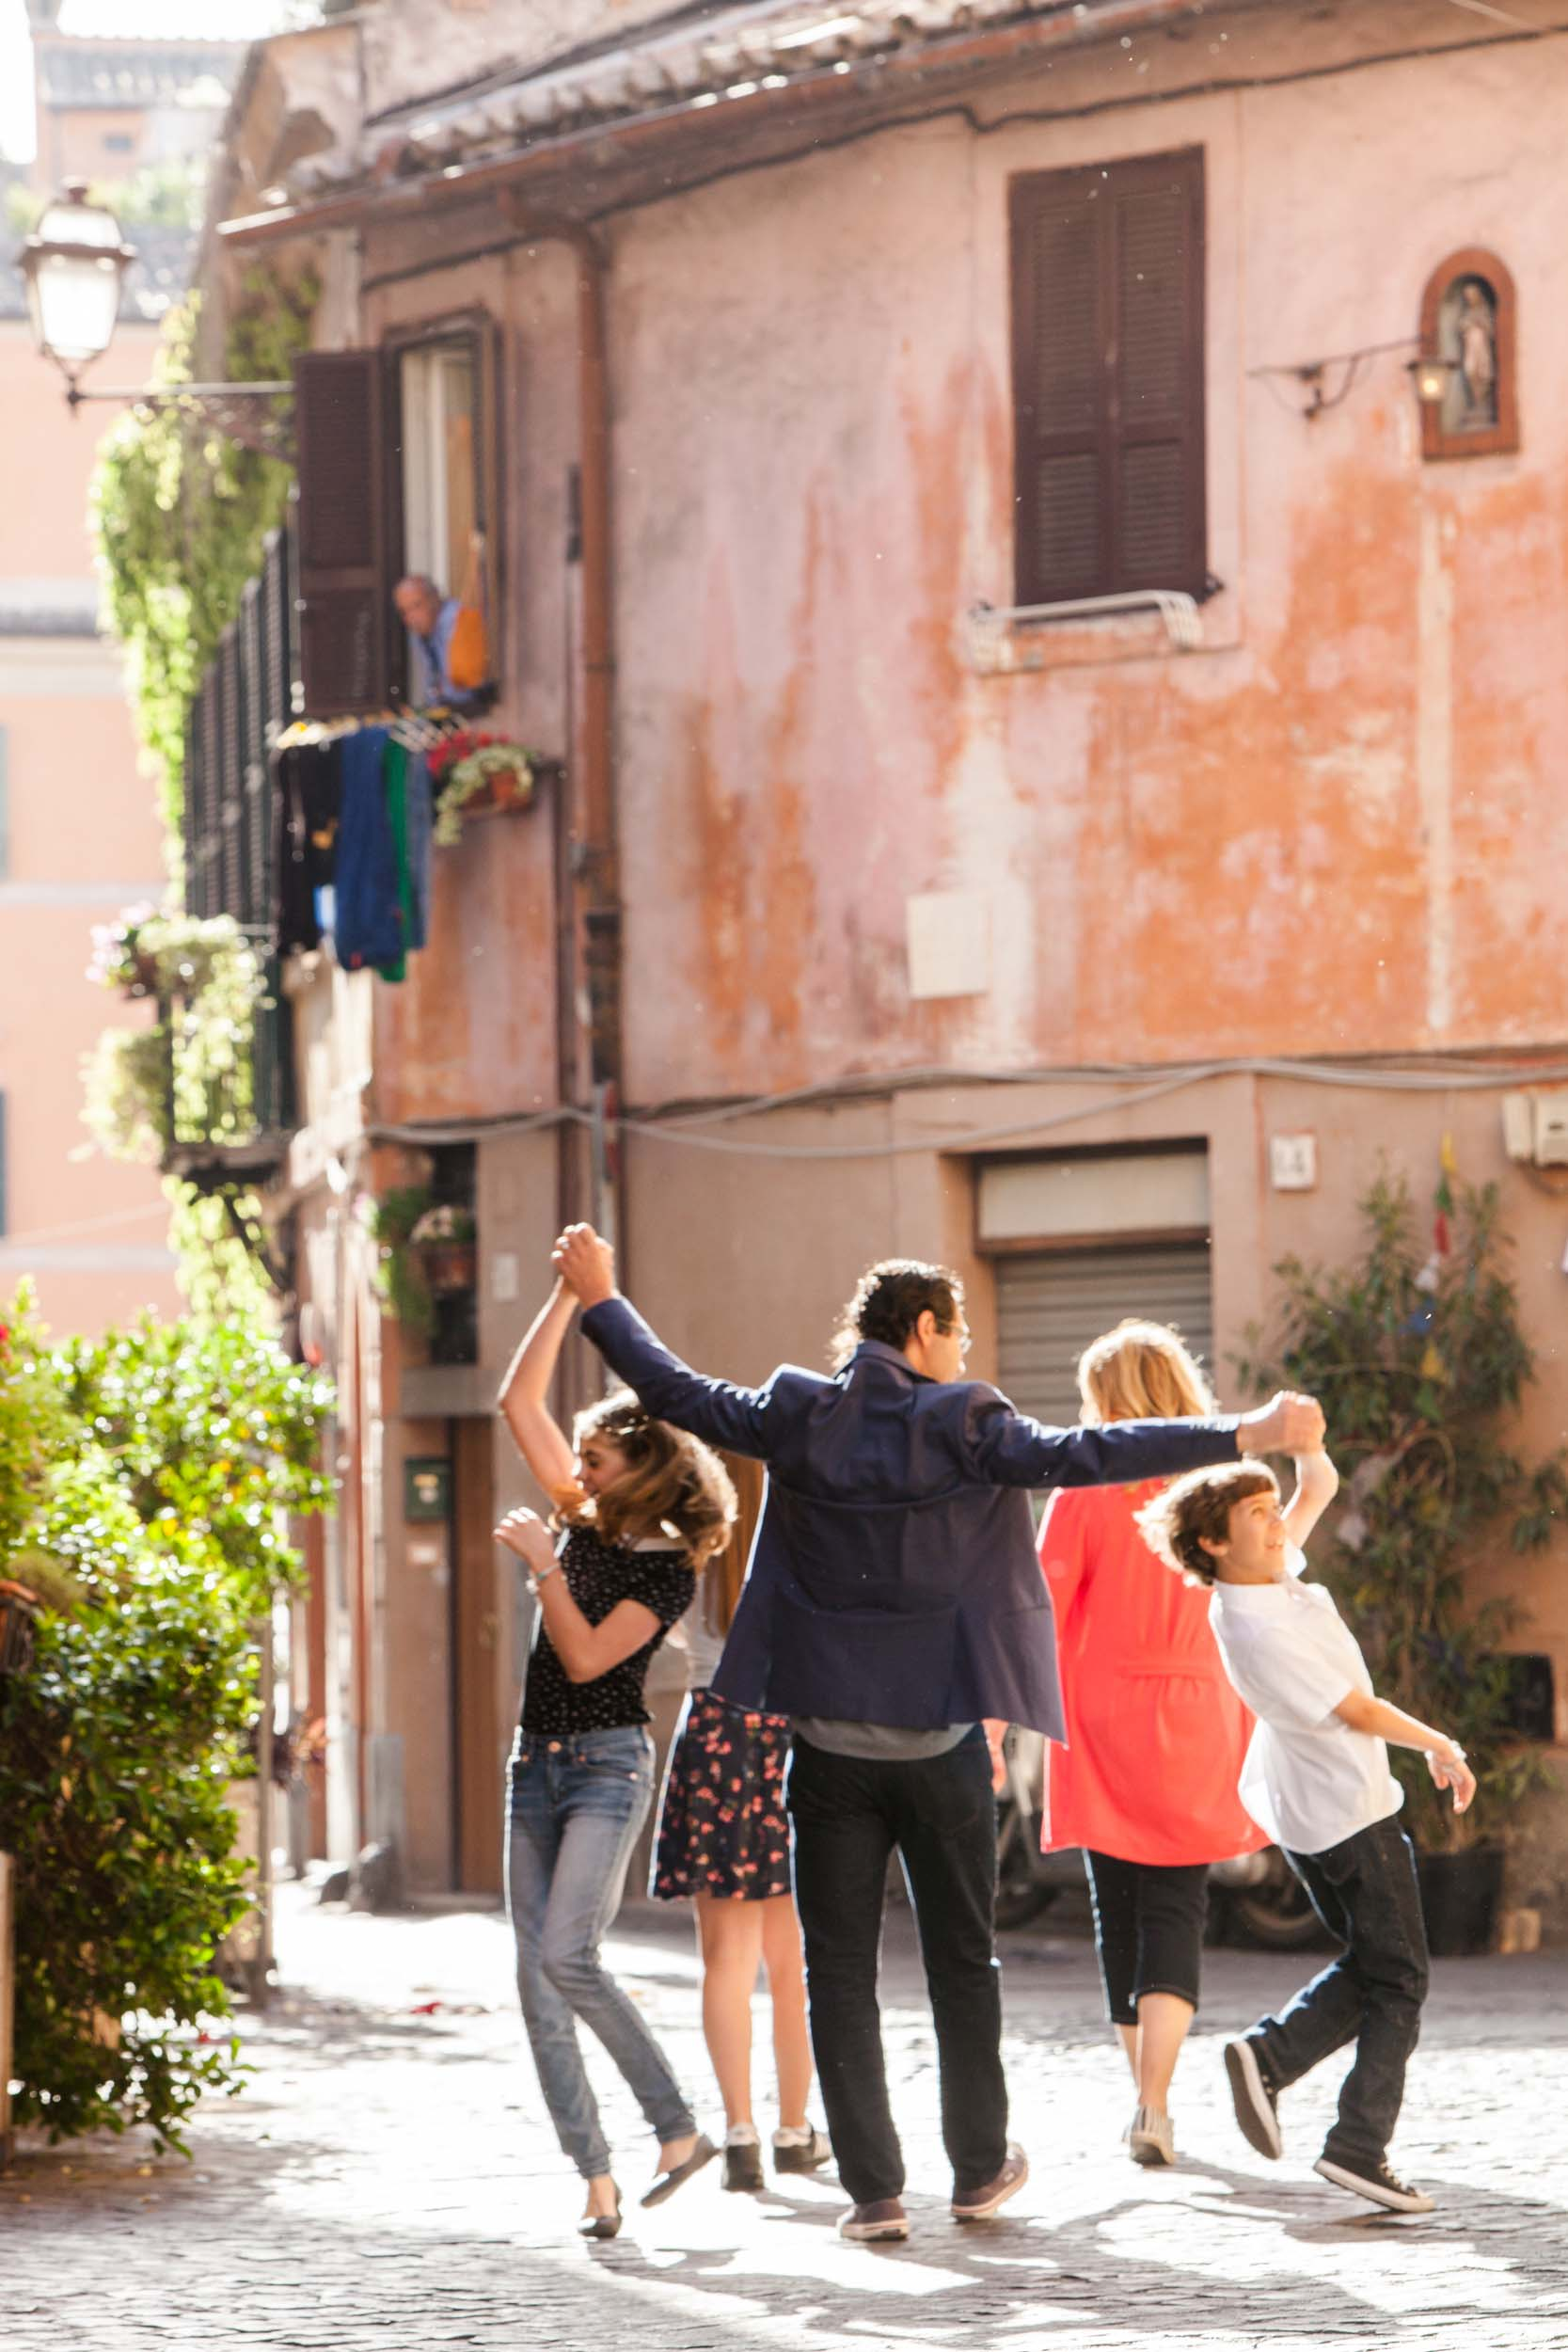 The Mauti-Boni family in  Rome    Flytographer Guido